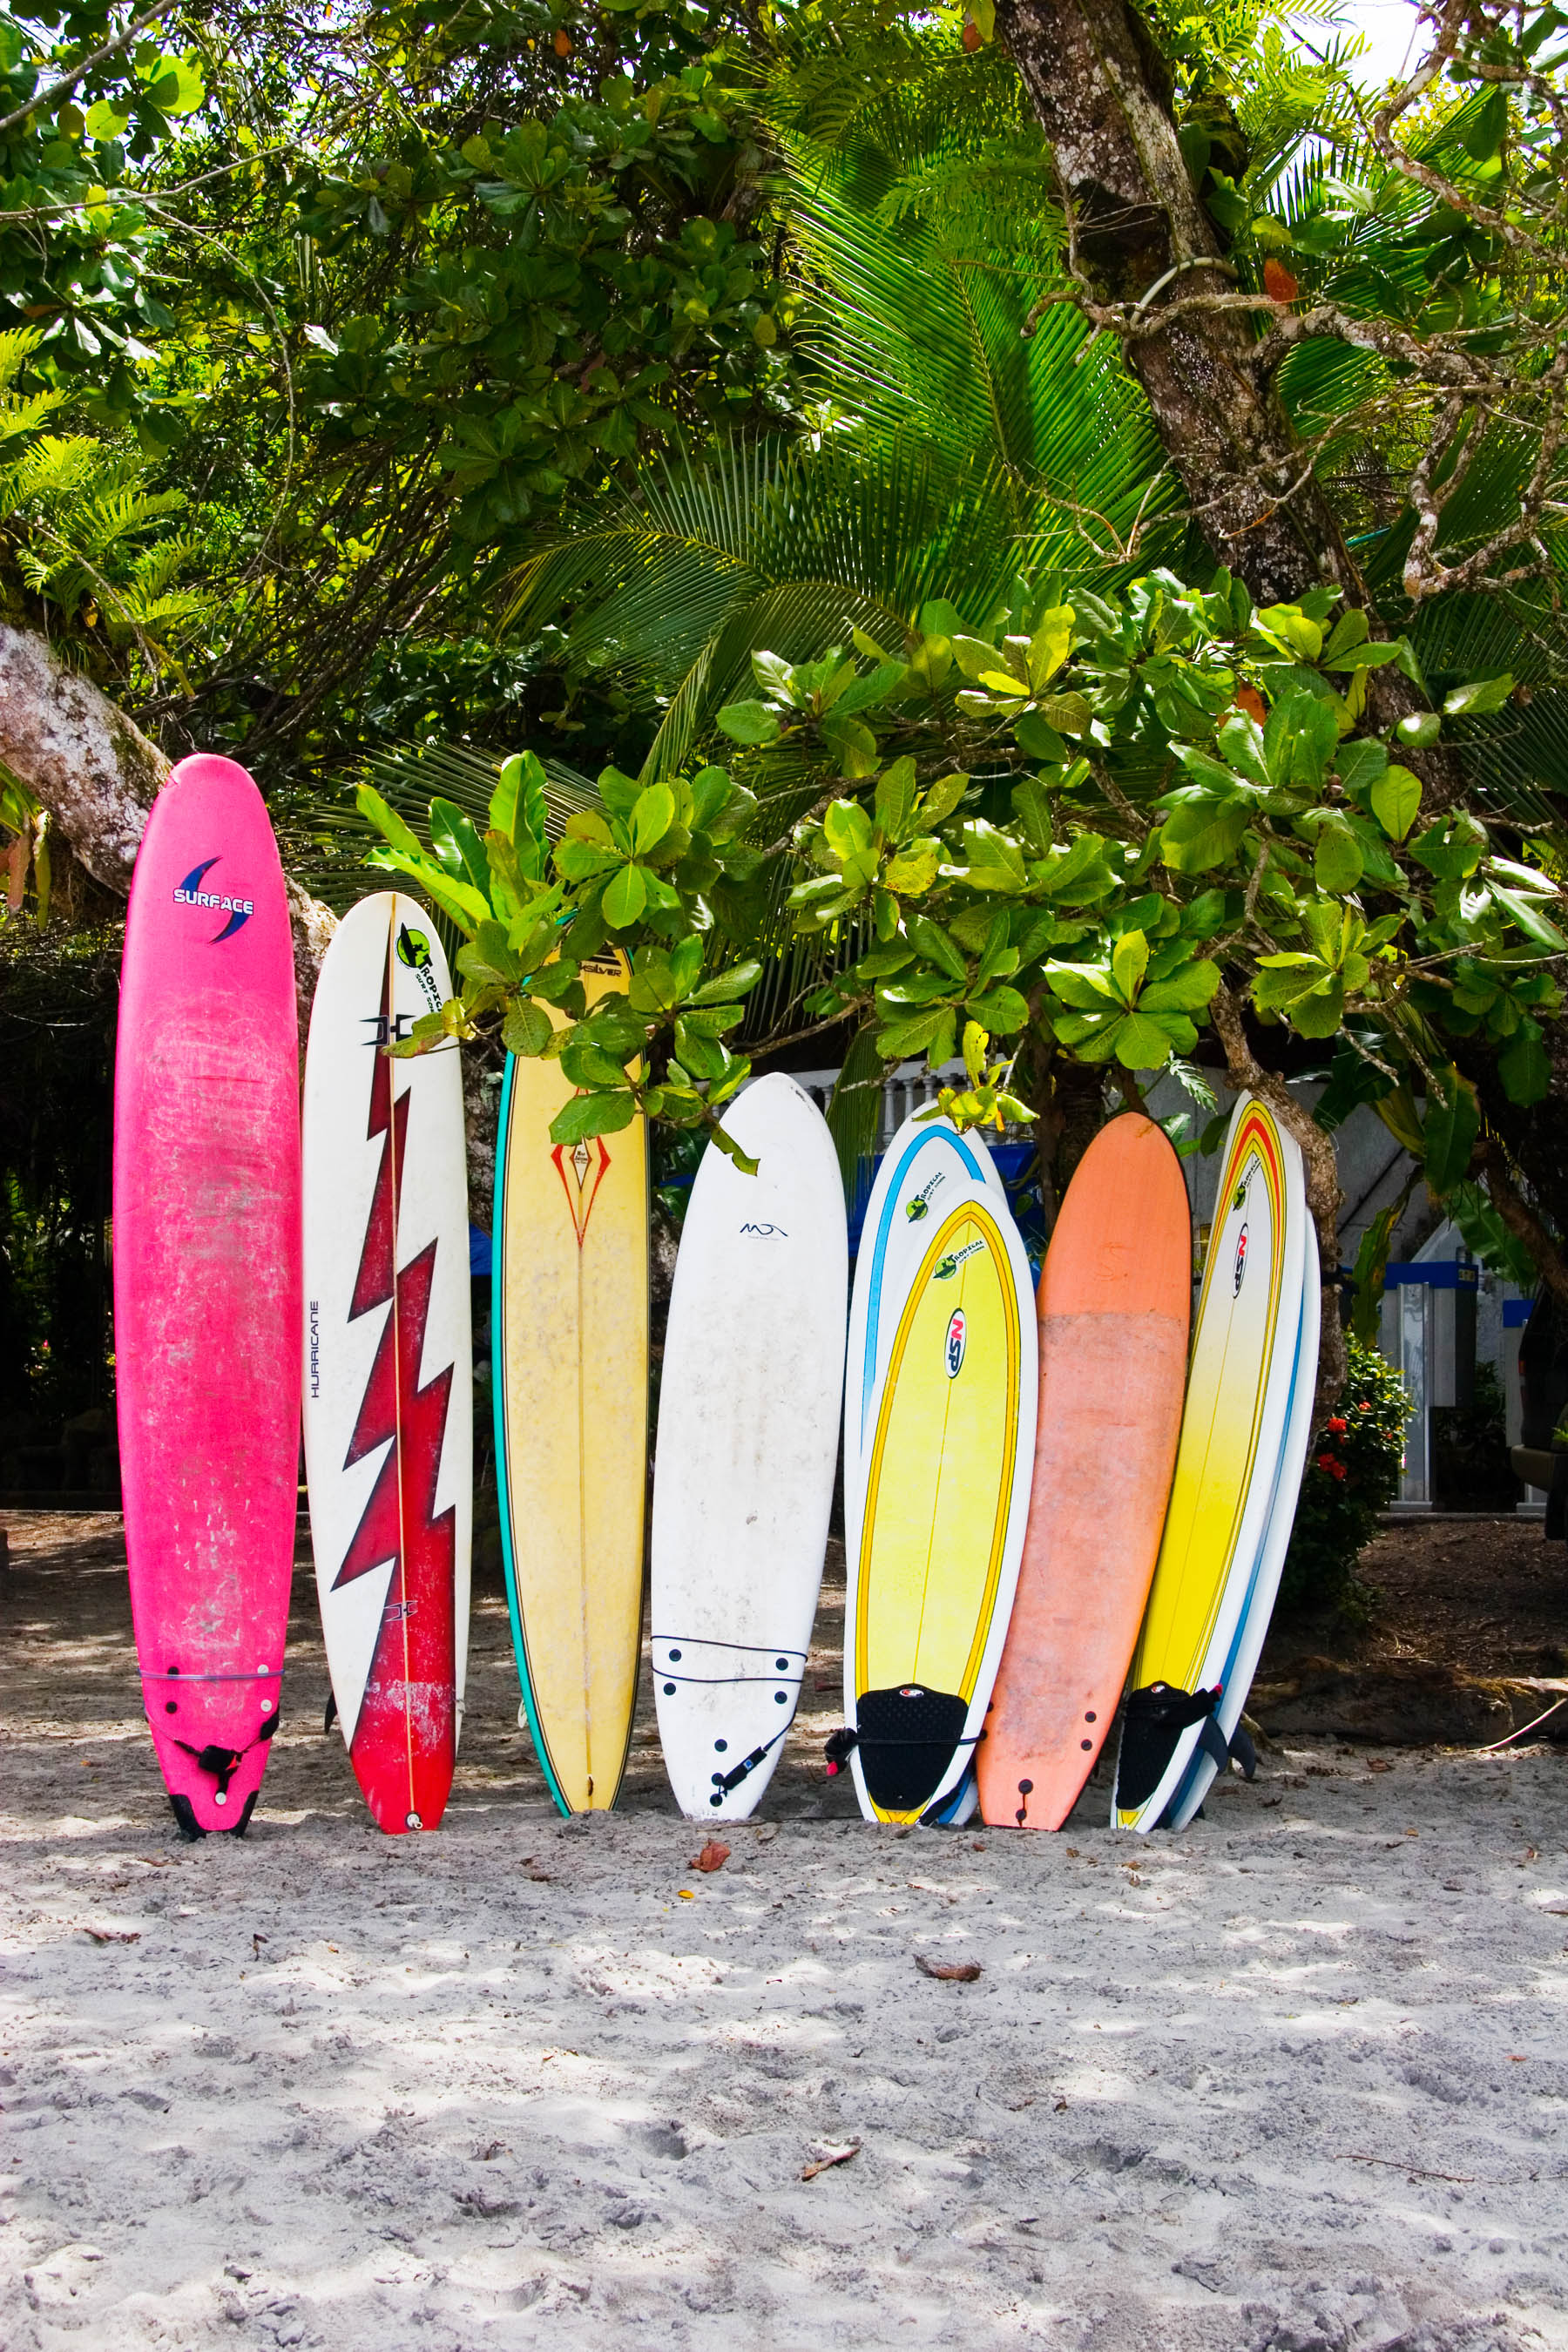 Surfboards for sale, Parque Manuel Antonio